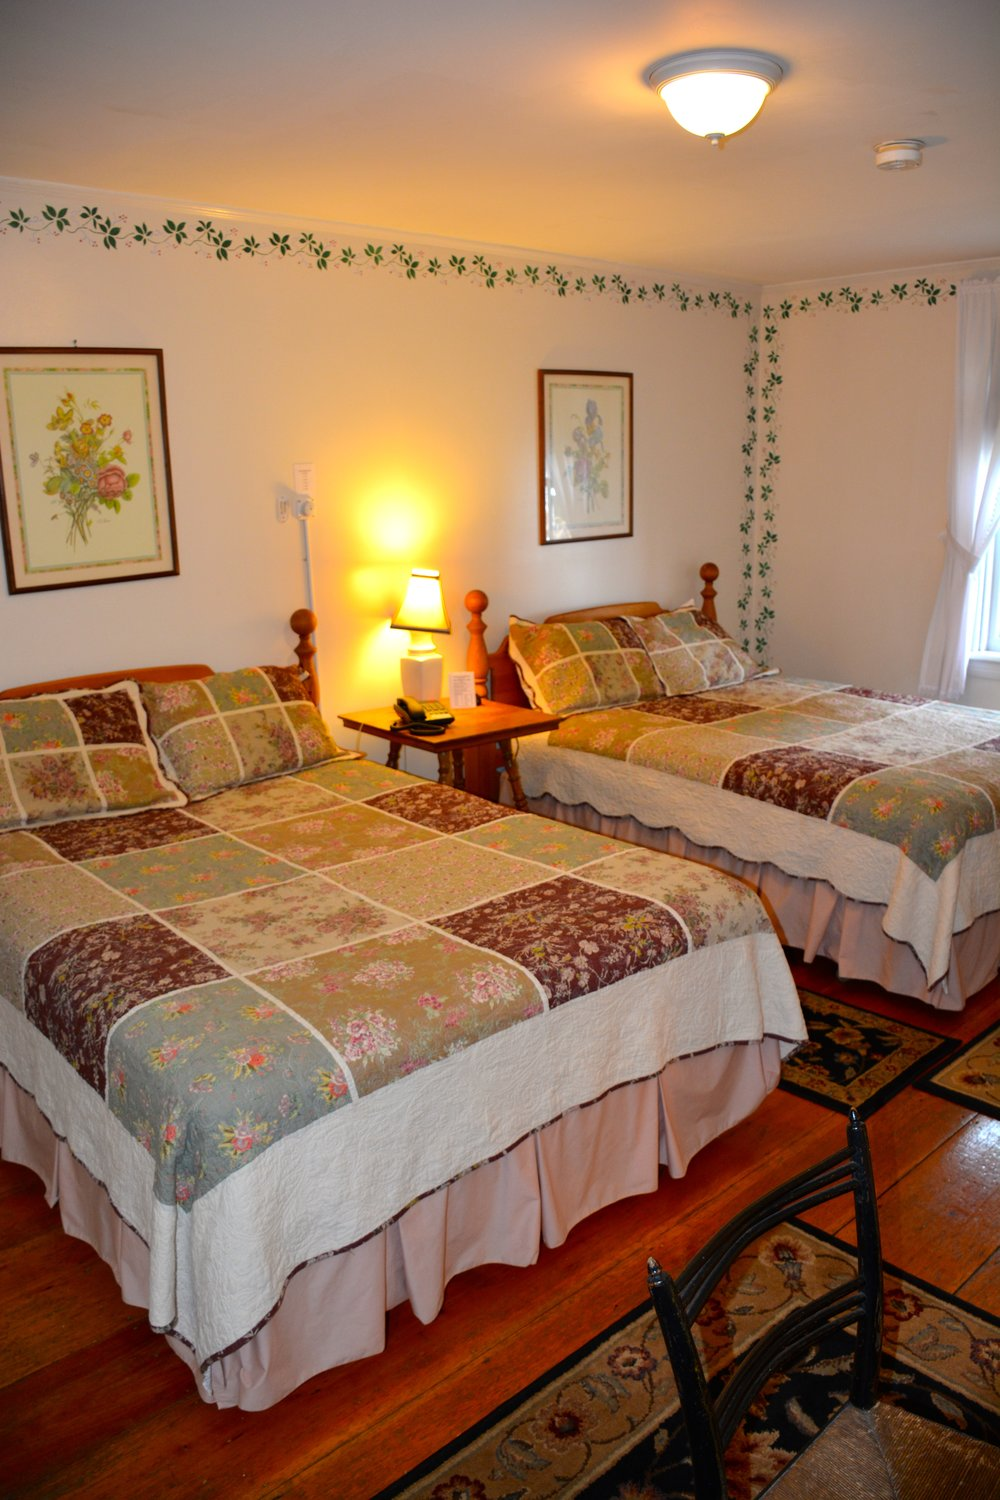 The Manchester Room - The Dowds' Country Inn - Lyme, NH